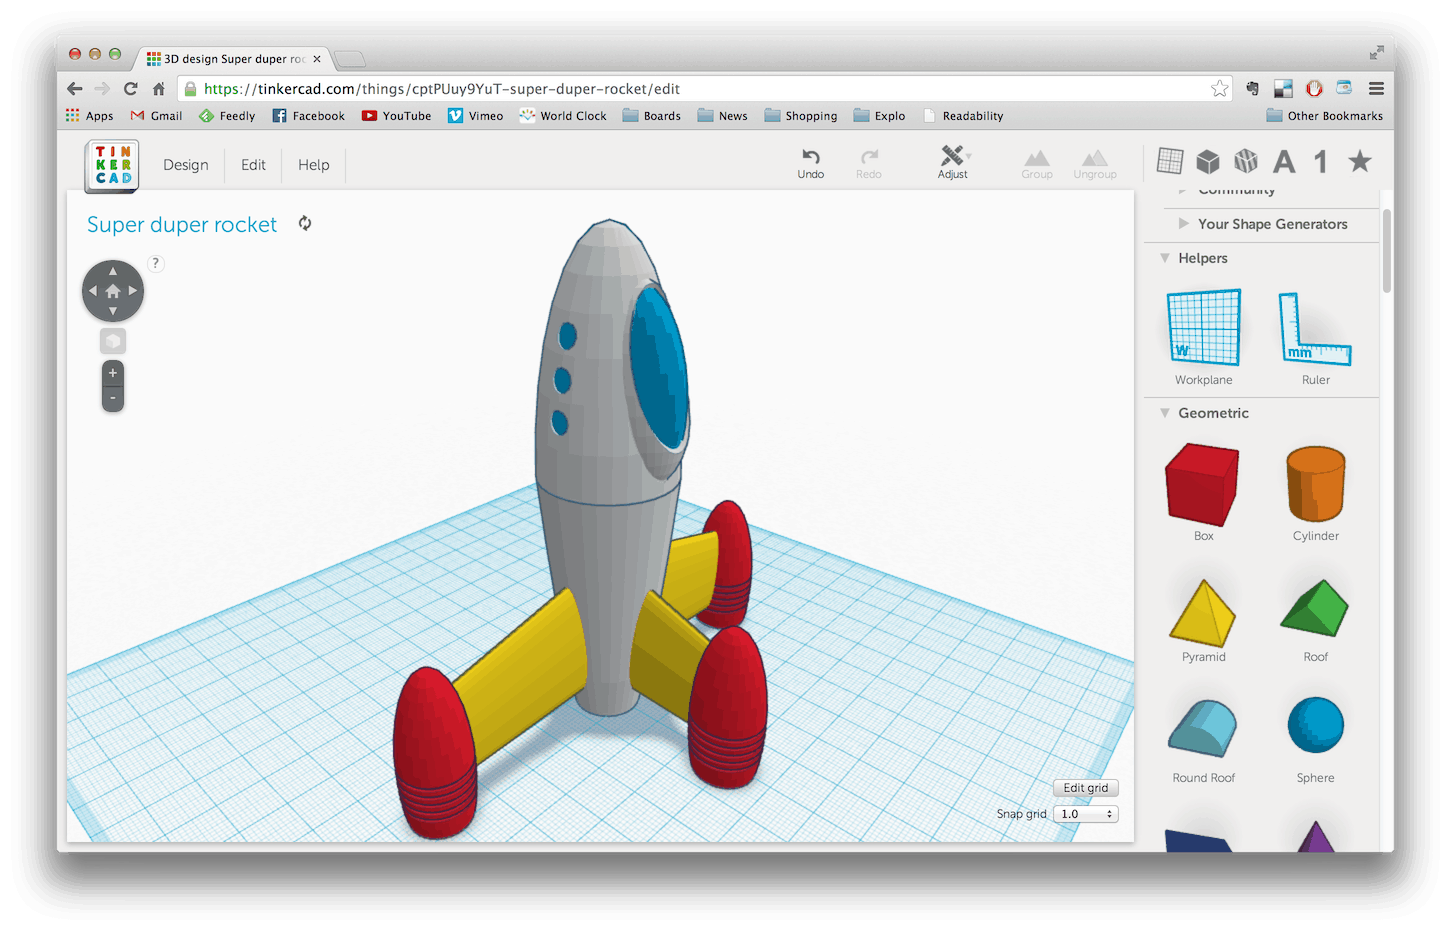 Tinkercad 3d printer design software